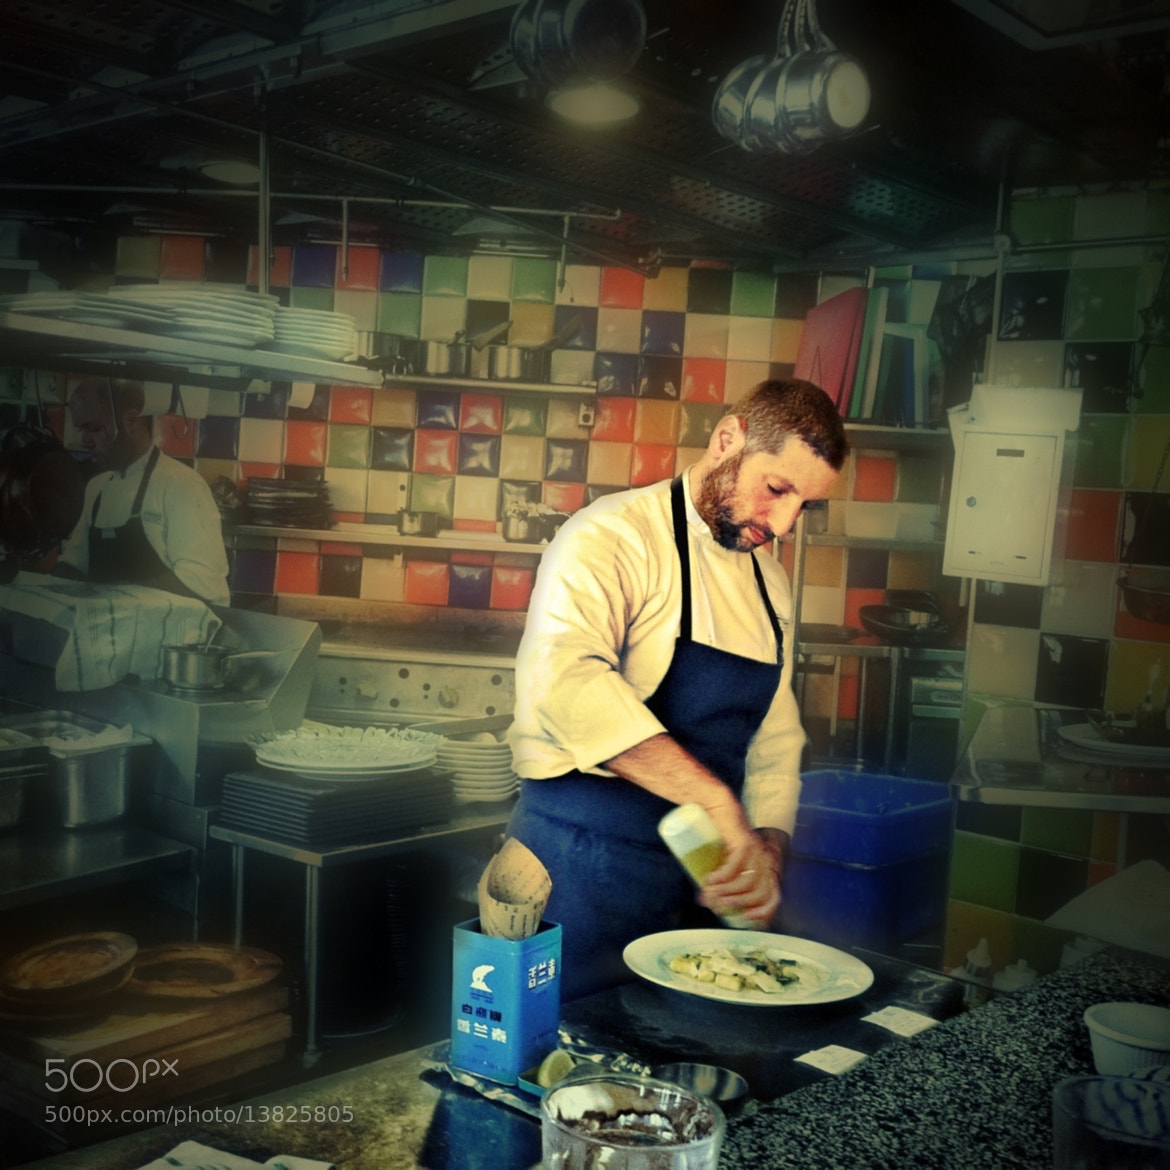 Photograph The Chef of MahneYuda - Asaf Granit by Ira Khrakovsky Dotan on 500px